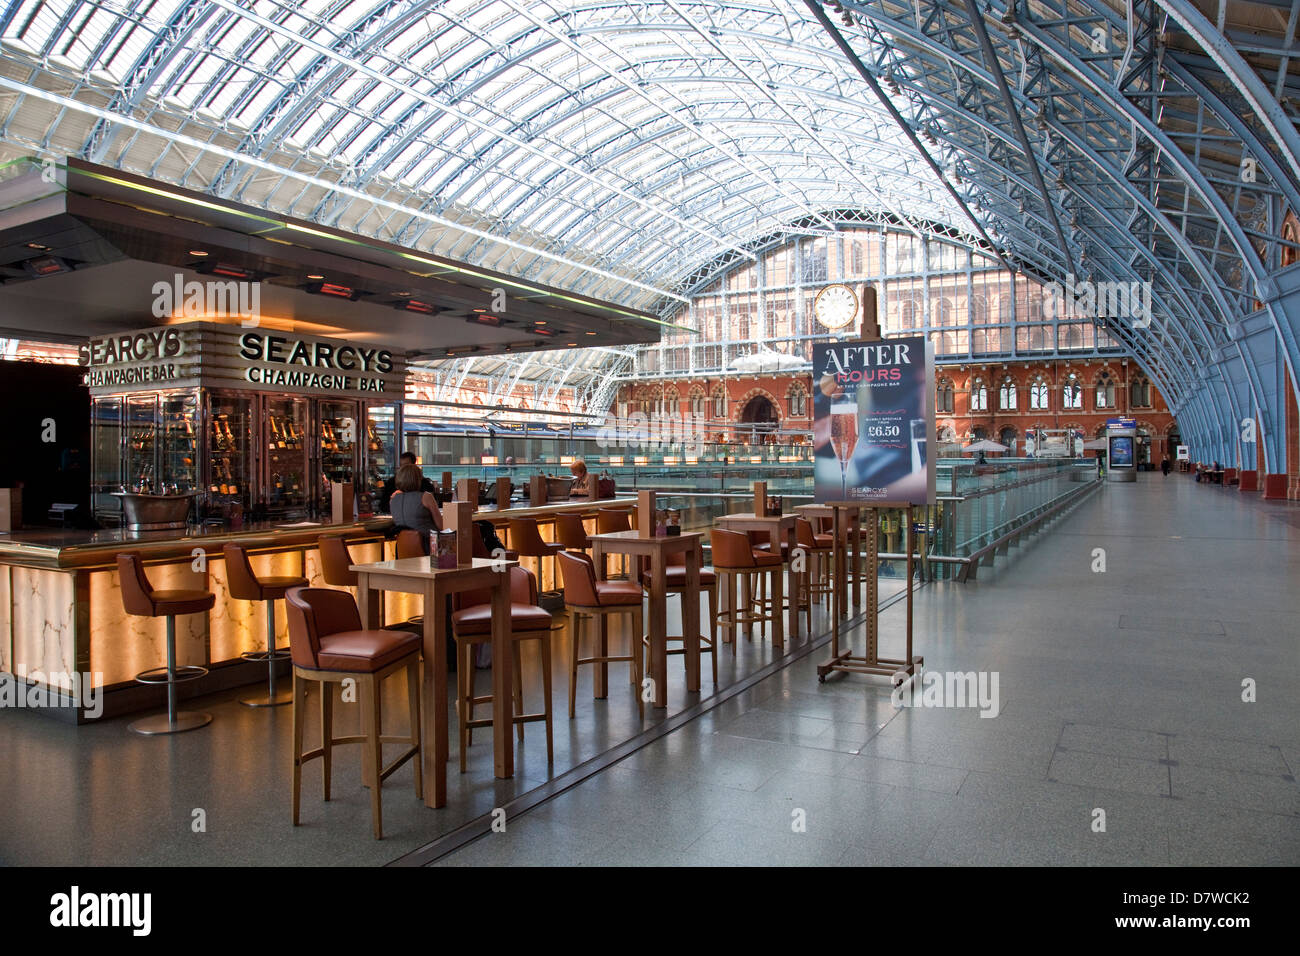 Searcys Champagne Bar, St Pancras International Train Station, London, England - Stock Image